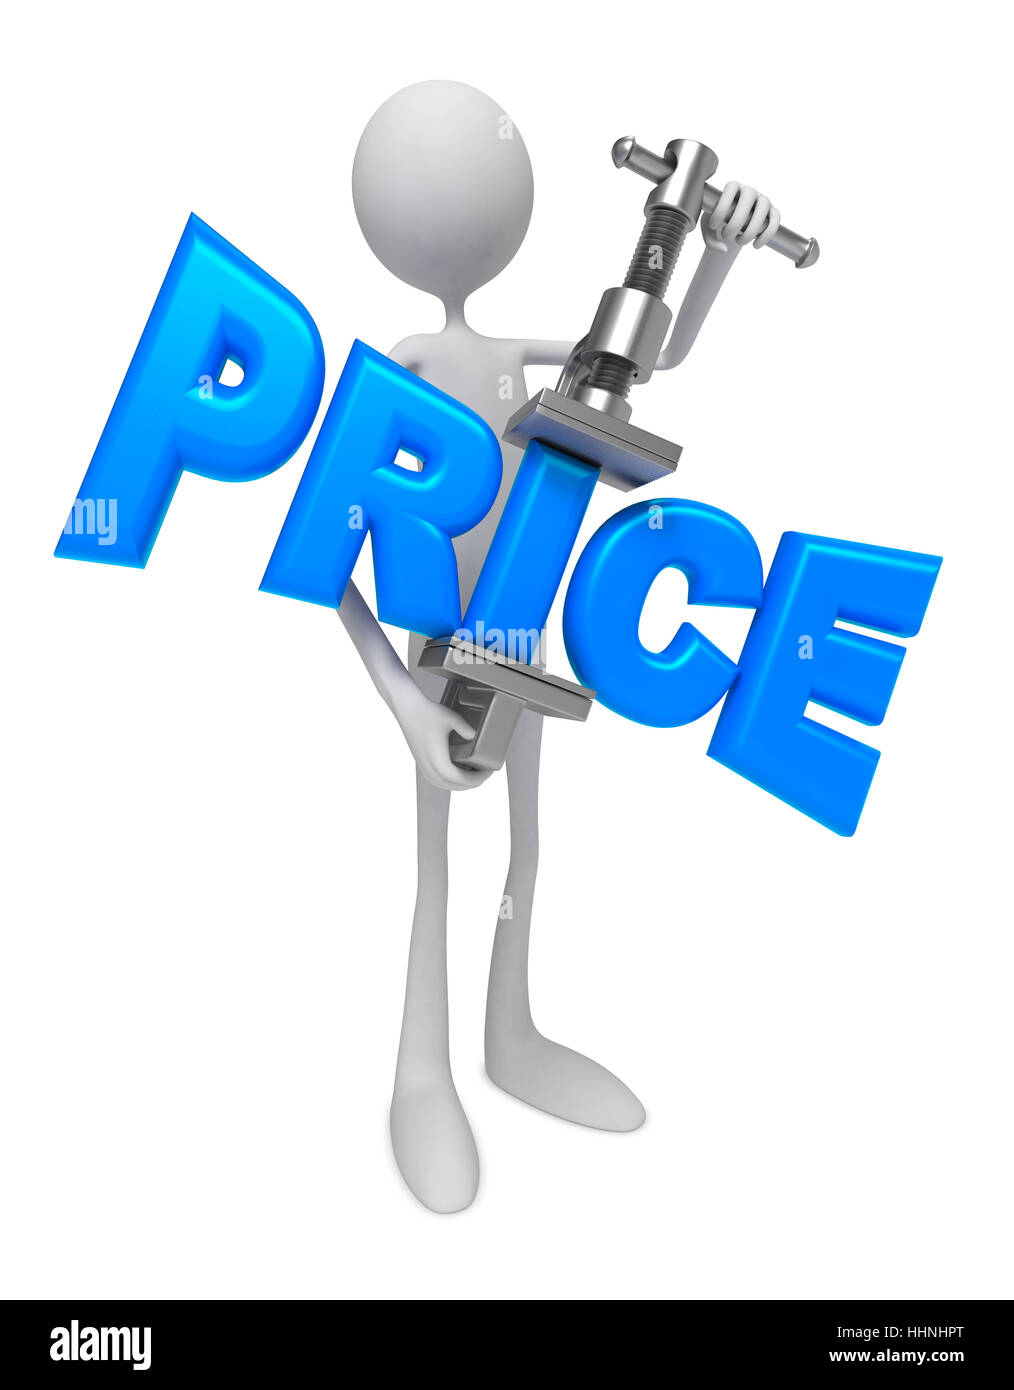 Person Compressing the Prices in Manual Press. Reduction of Prices - Concept. - Stock Image